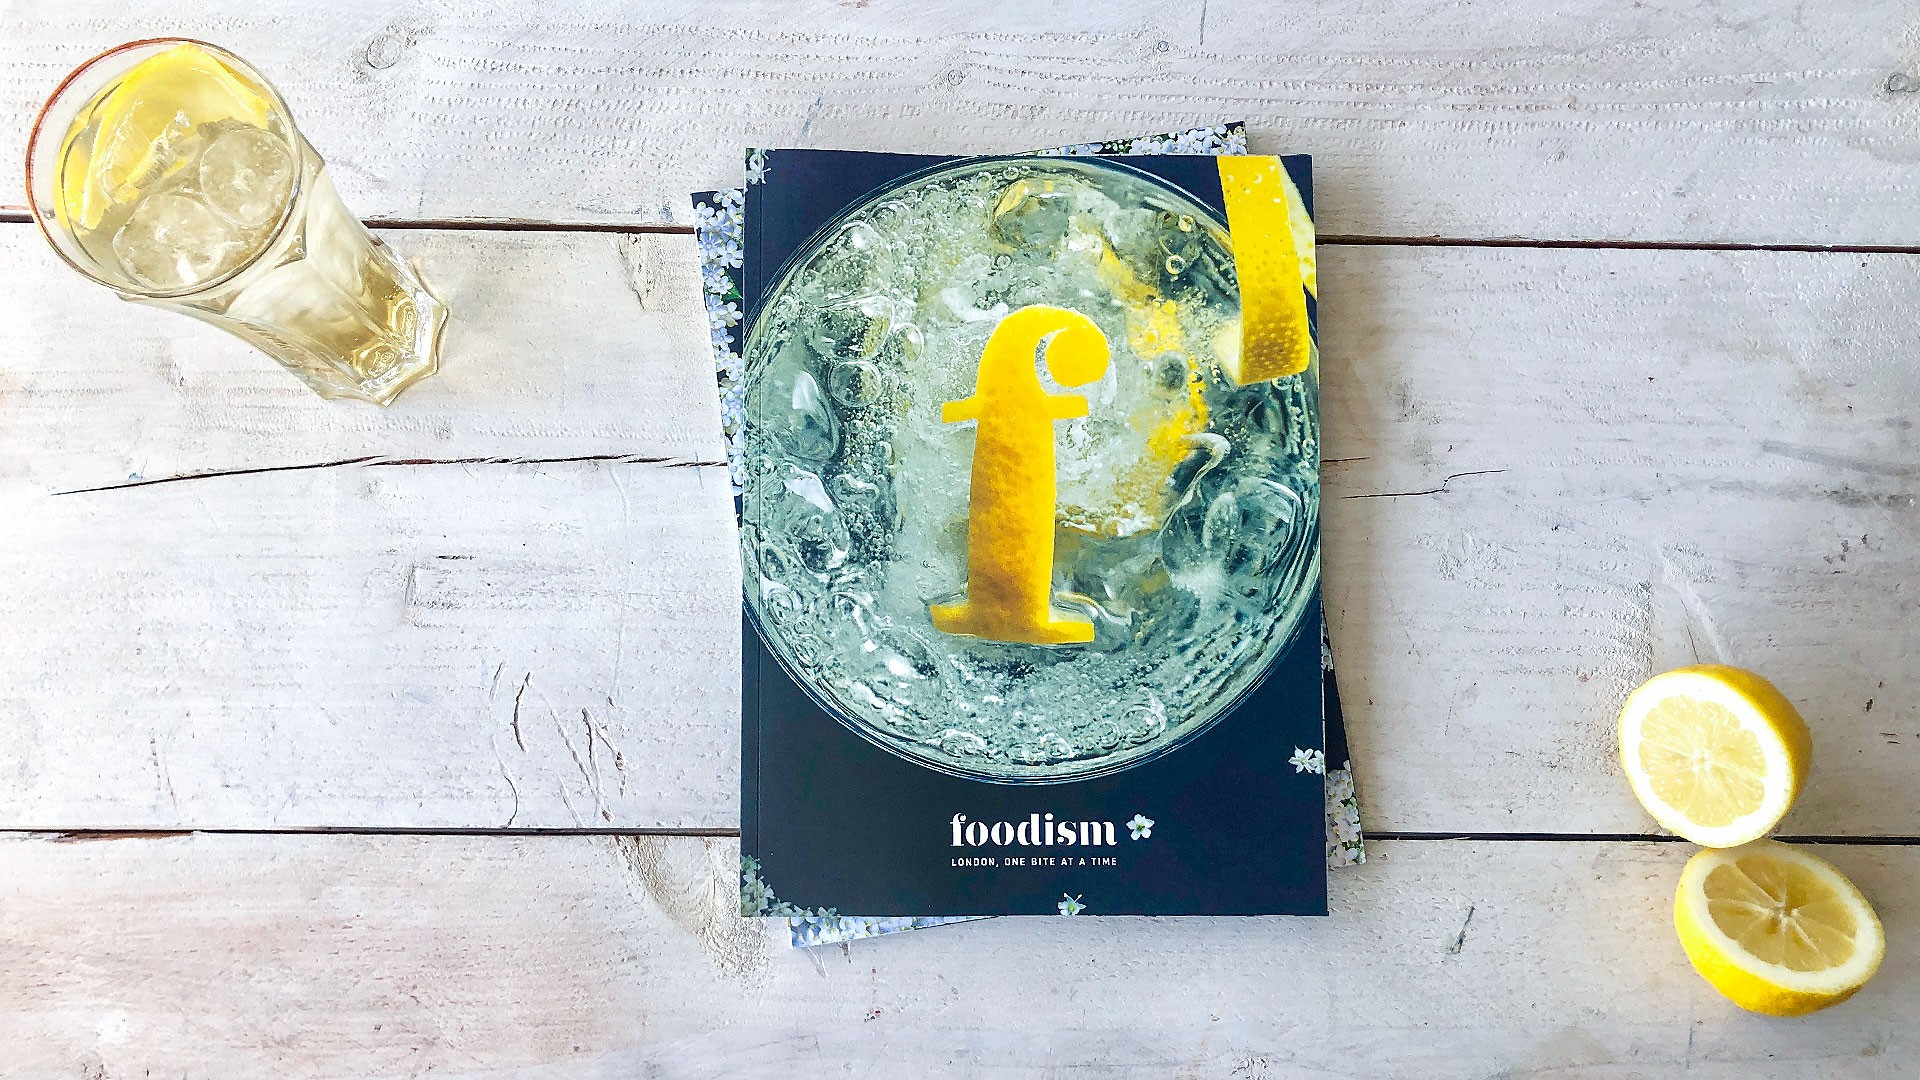 Foodism issue 34